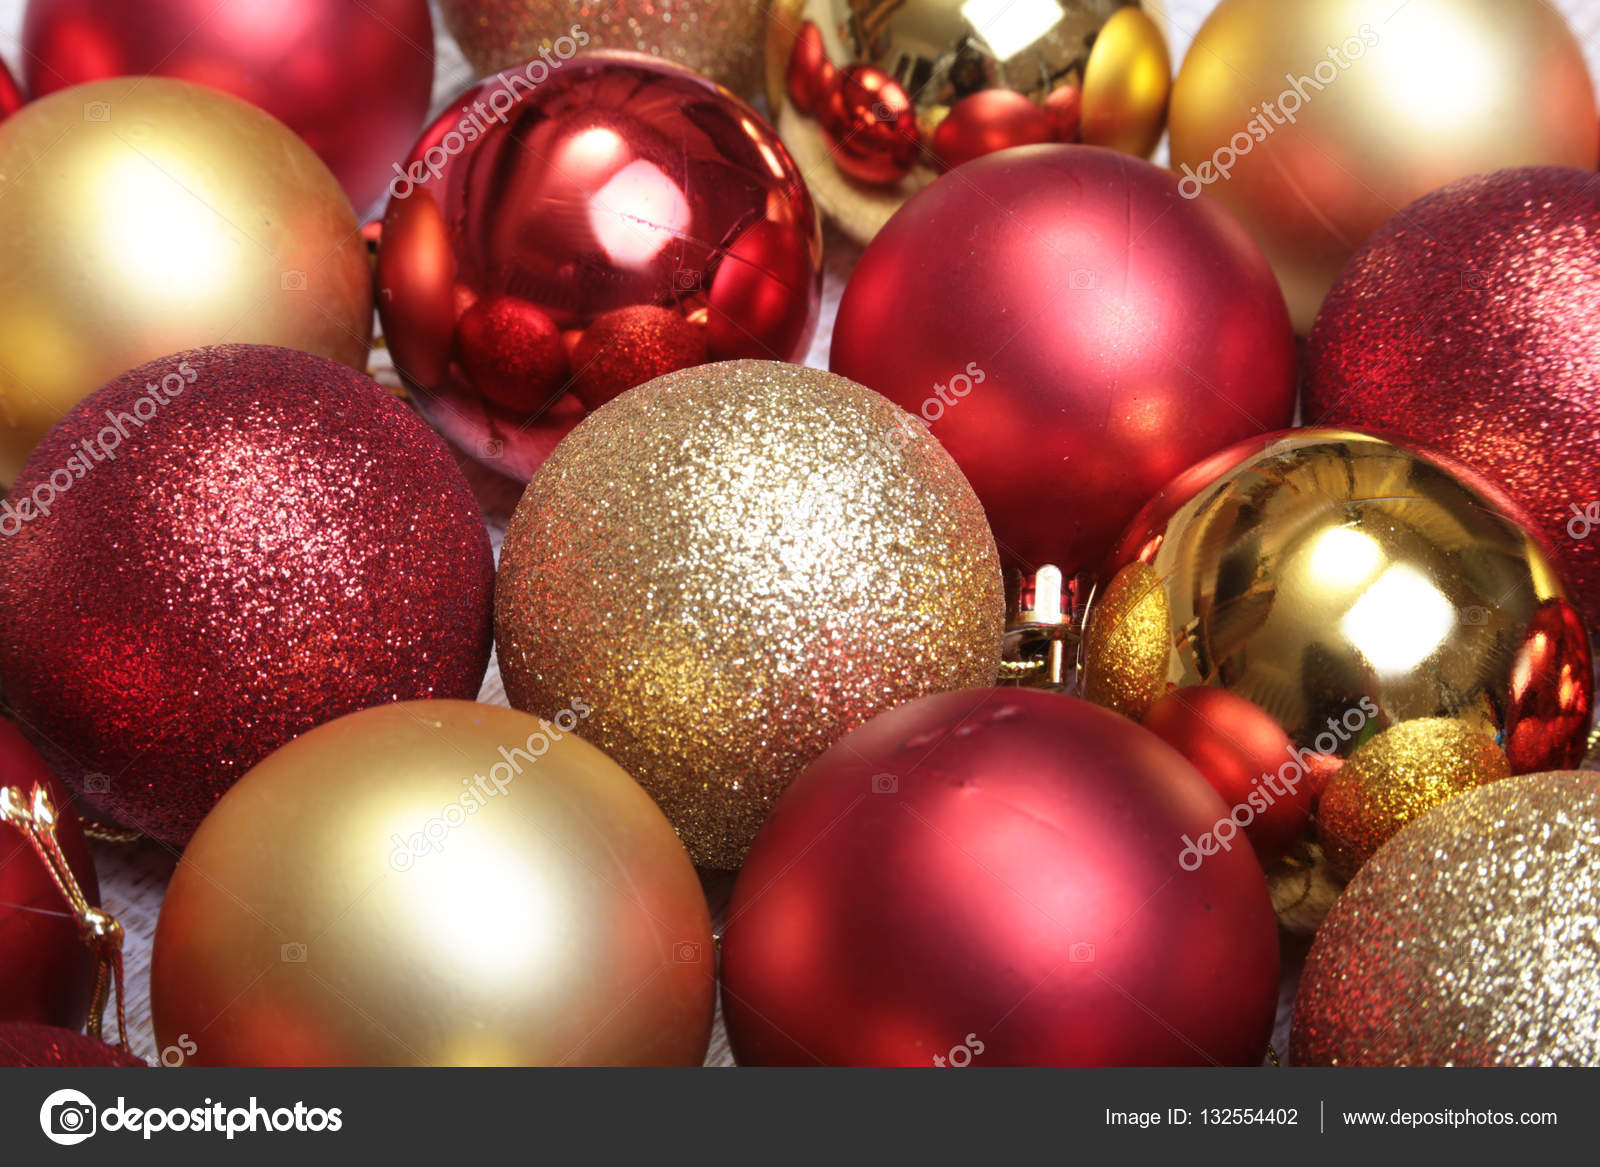 depositphotos 132554402 stock photo red and gold christmas balls